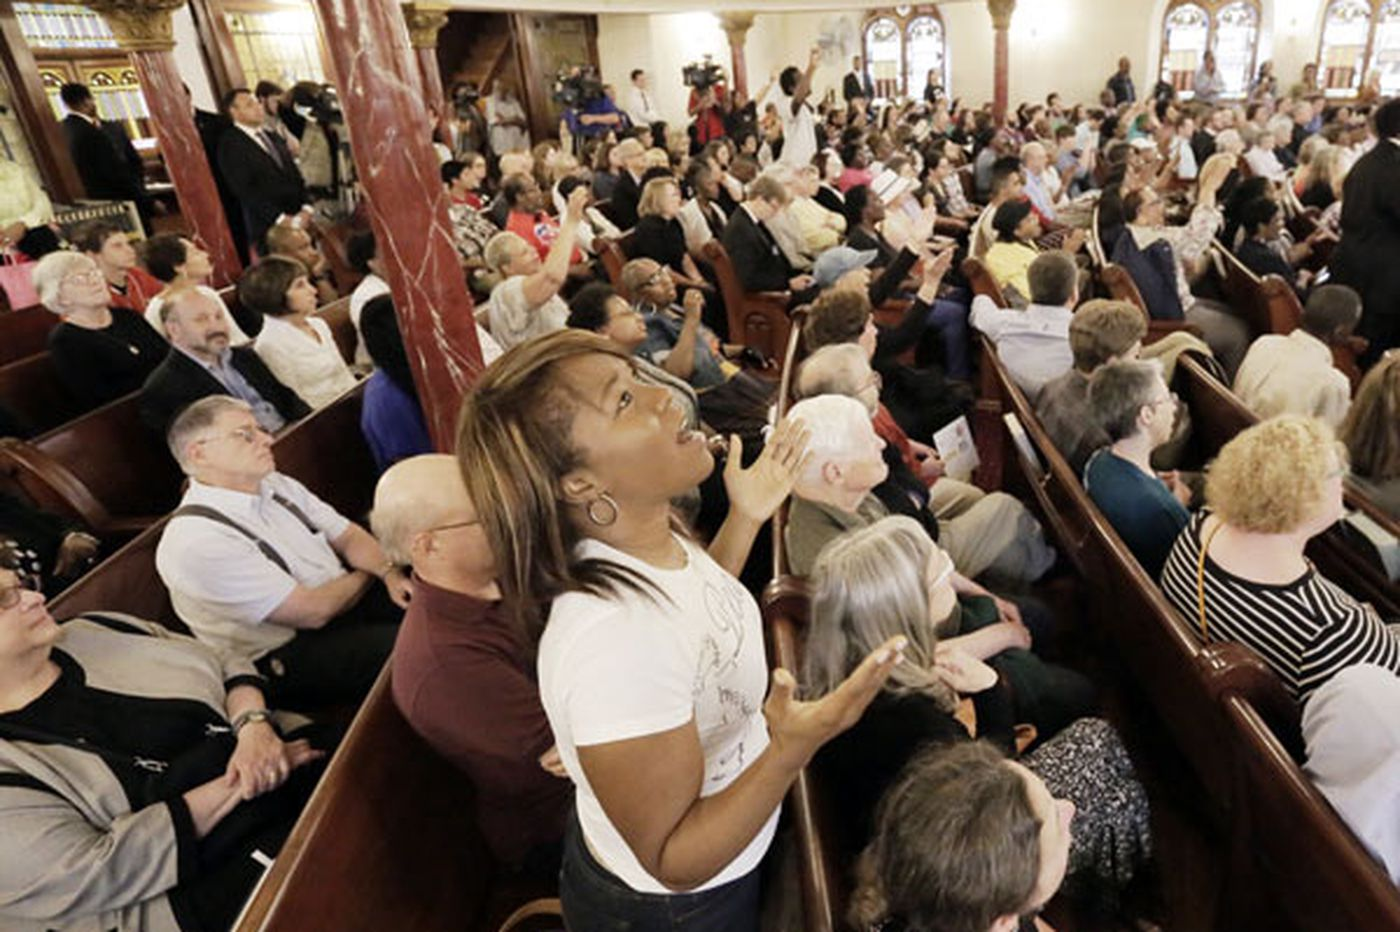 At interfaith service, hundreds grieve for Charleston victims